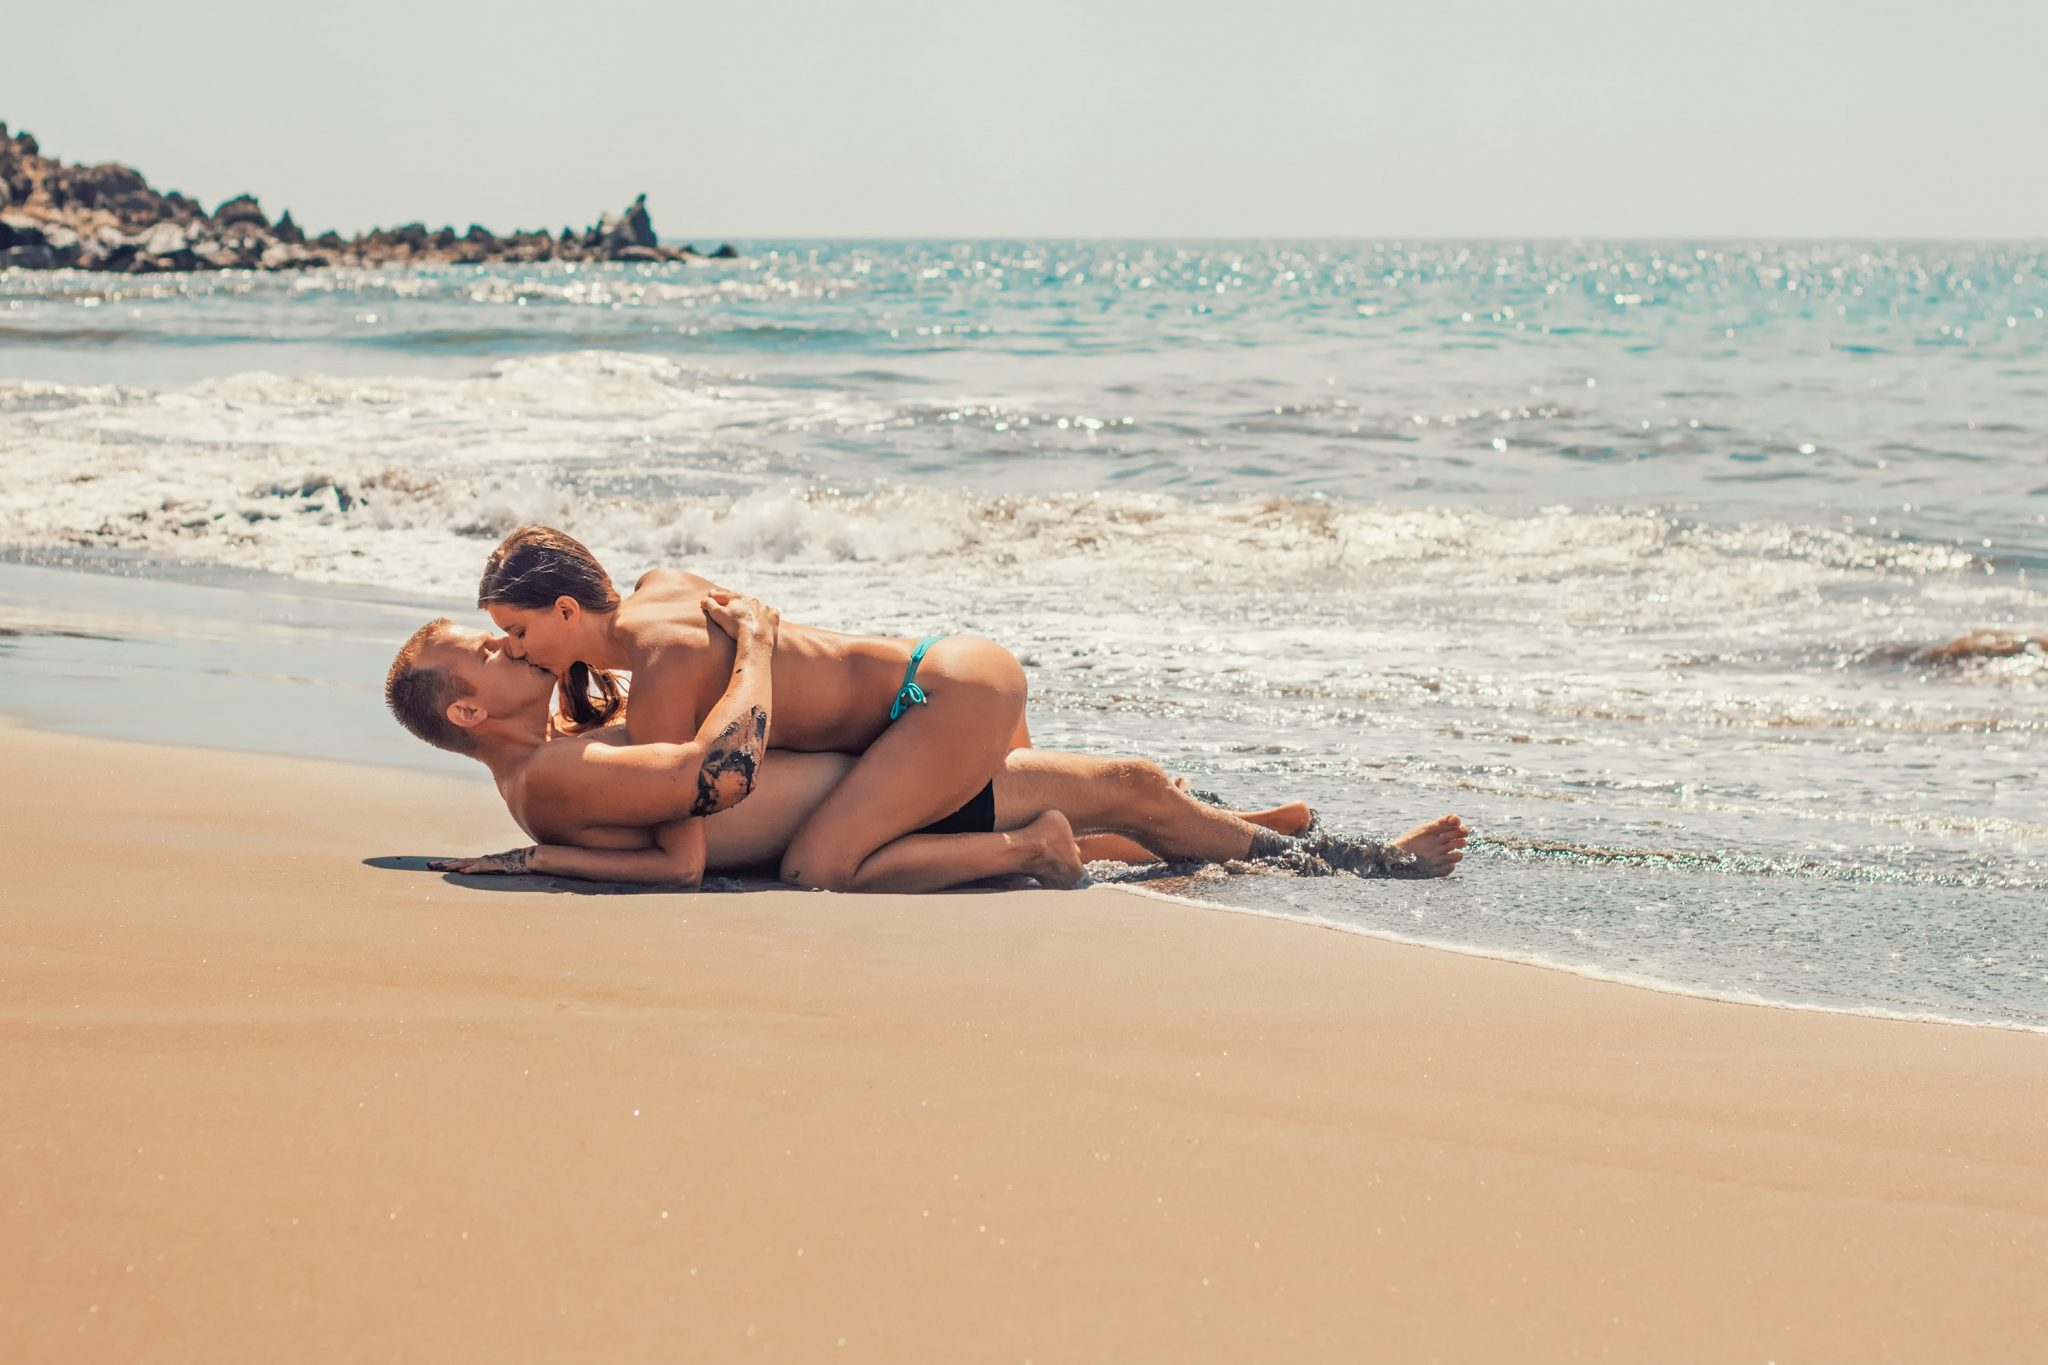 A Sex Scene is More than Just a Sex Scene In 2018